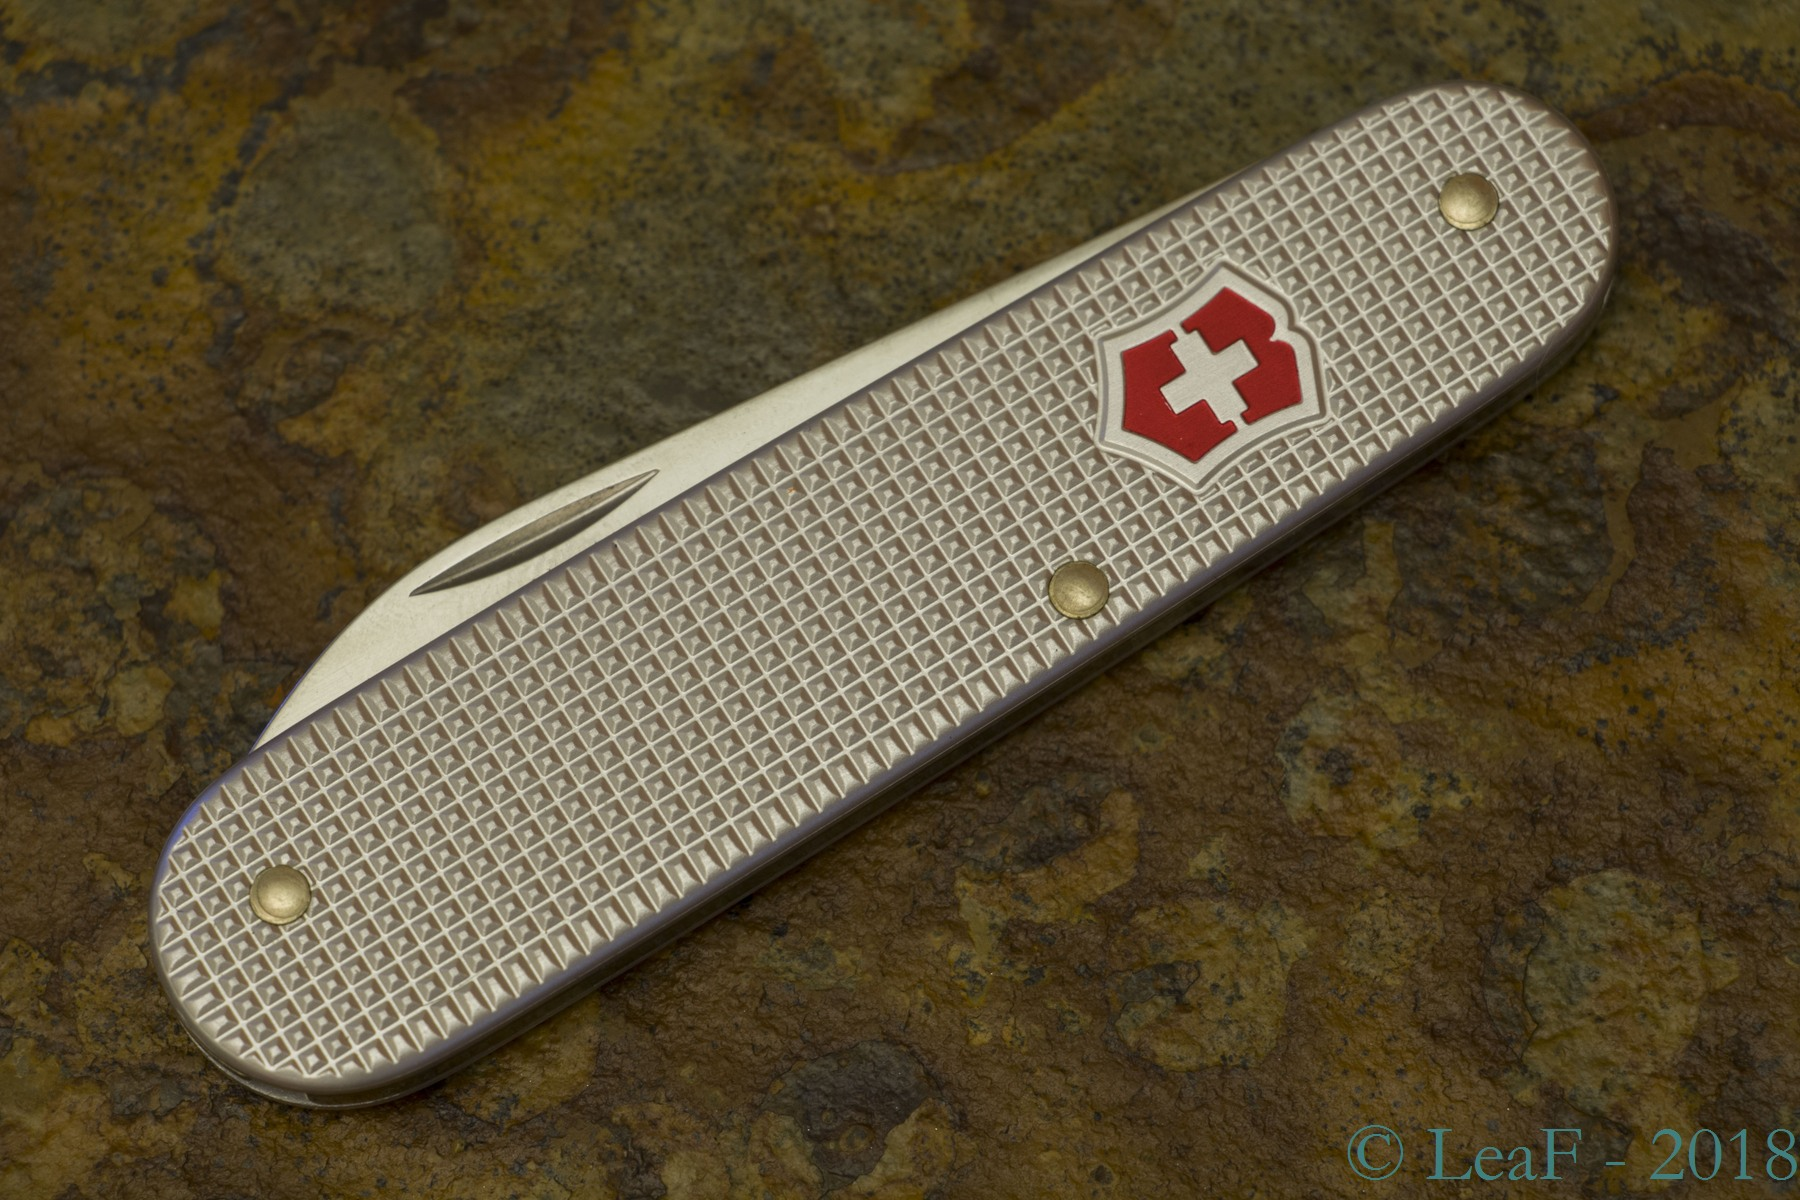 189 Bantam Alox Leaf S Victorinox Knives Collection